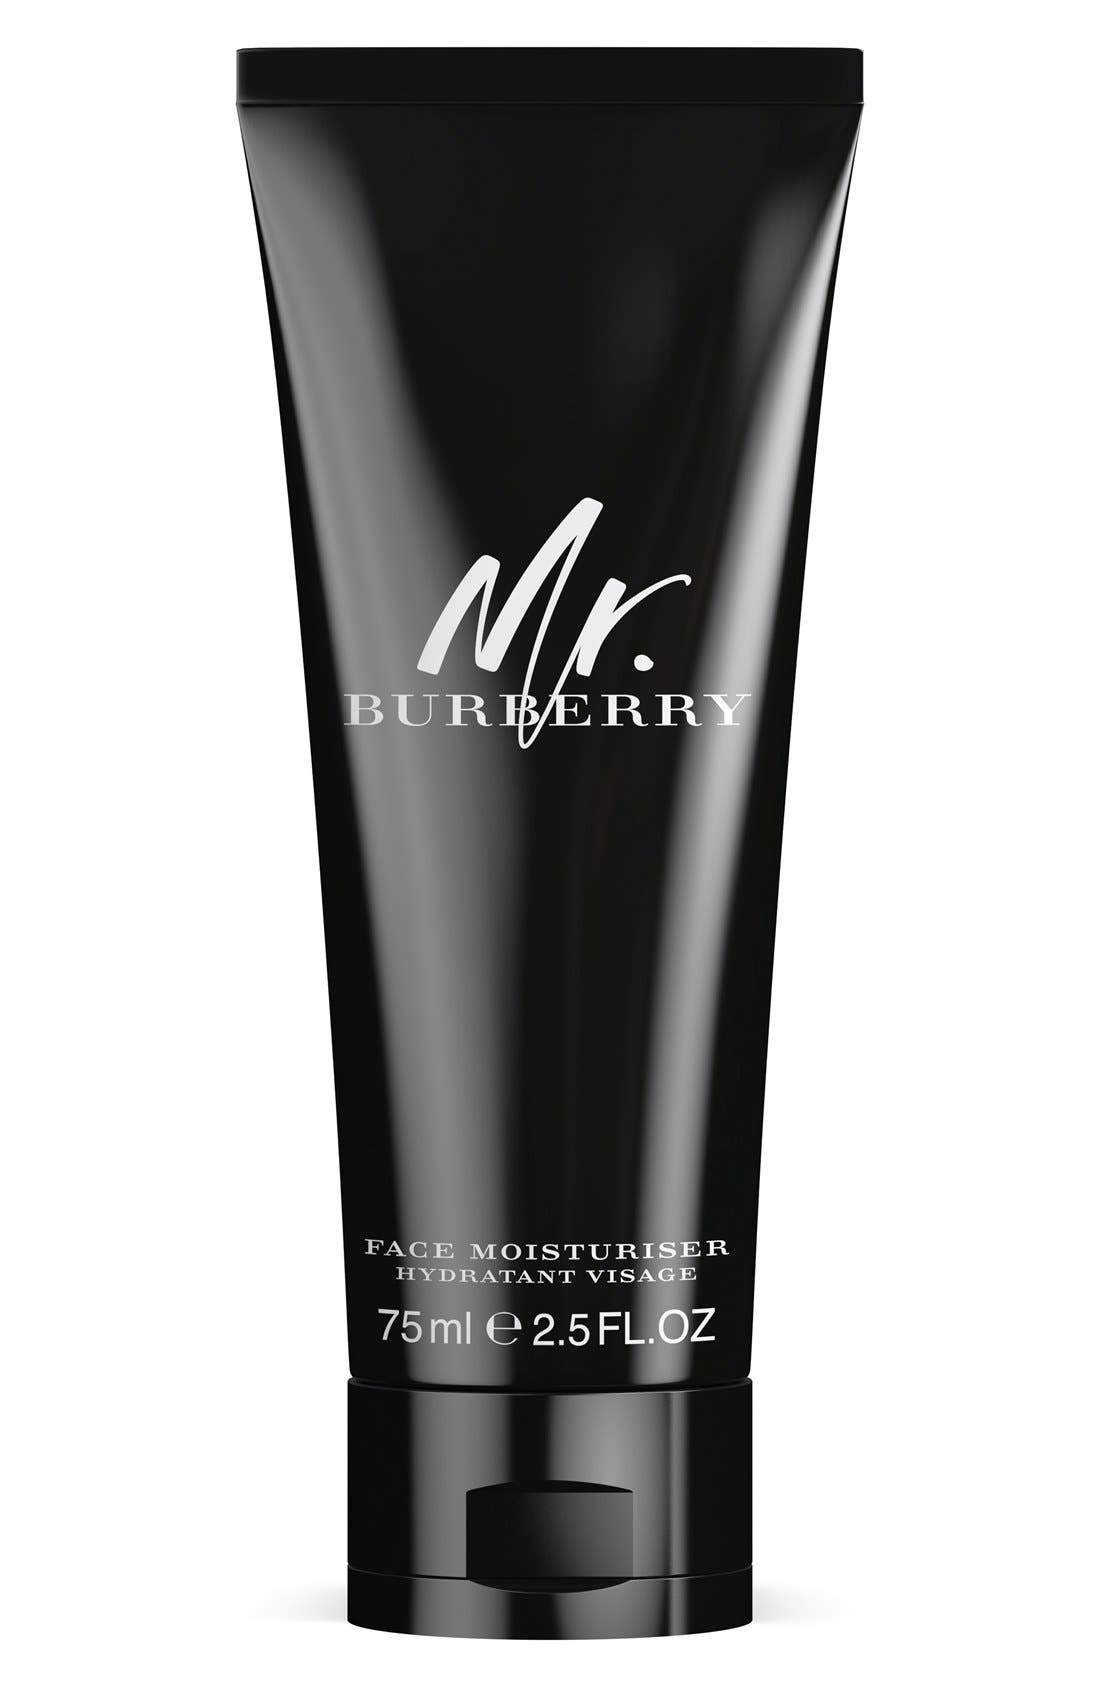 Burberry 'Mr. Burberry' Face Moisturizer